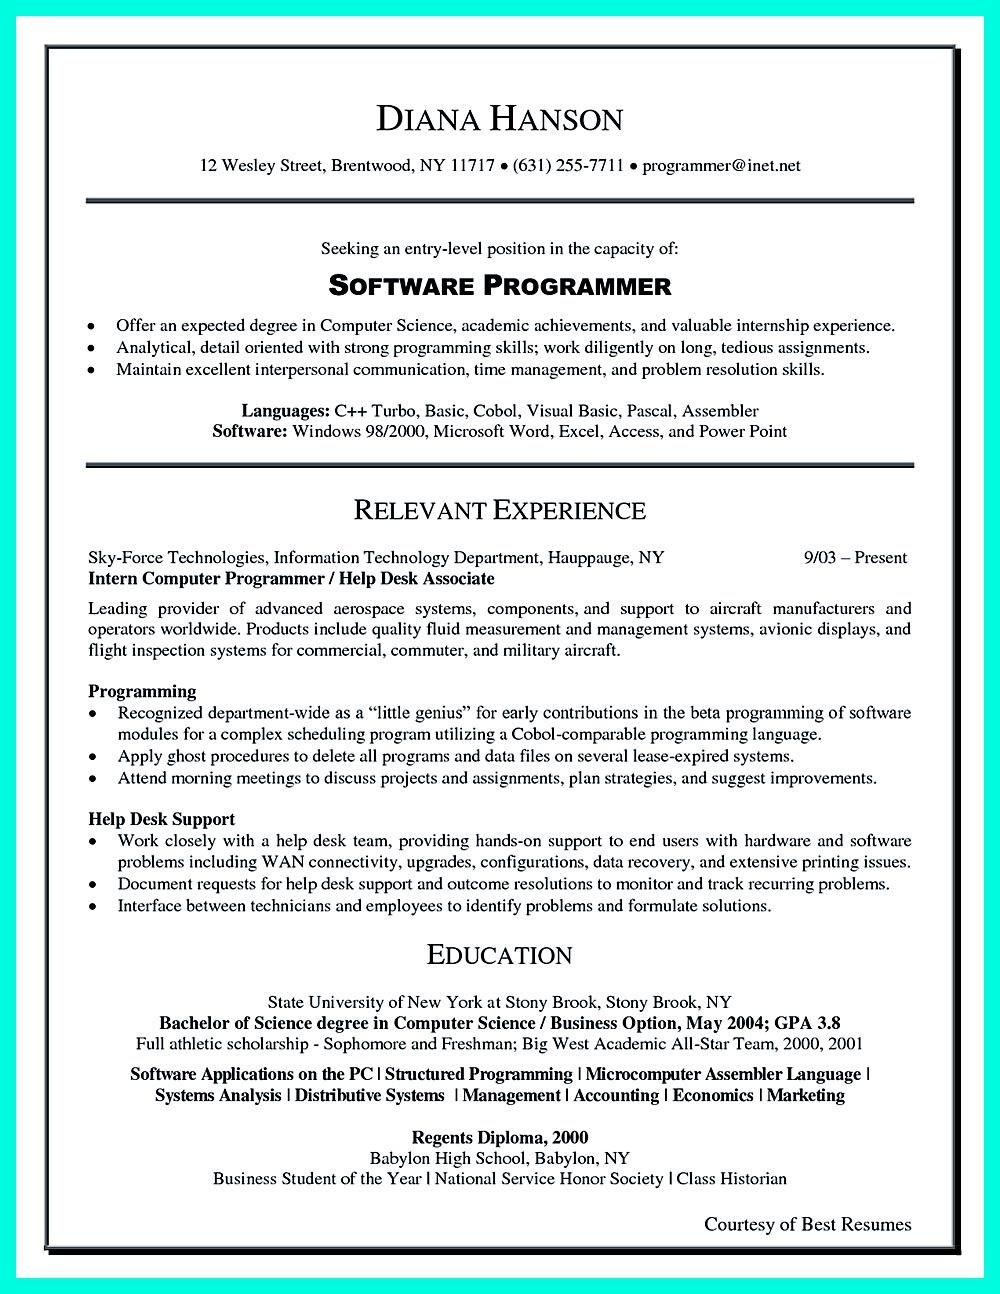 what you will include in the computer science resume depends on the training as well as - Computer Science Resume Tips